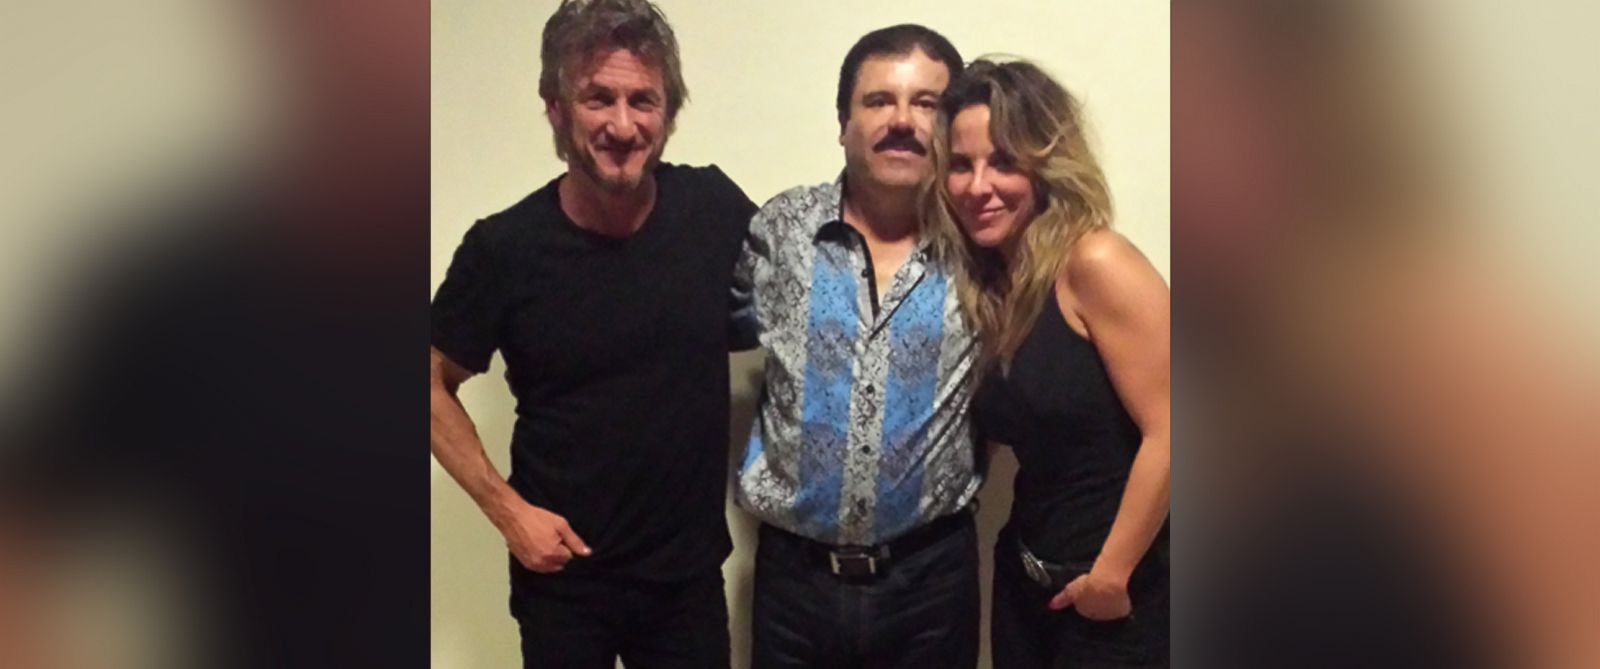 """PHOTO: Actor Sean Penn and actress Kate del Castillo are pictured together with notorious Mexican drug kingpin Joaquin """"El Chapo"""" Guzman during their meeting."""